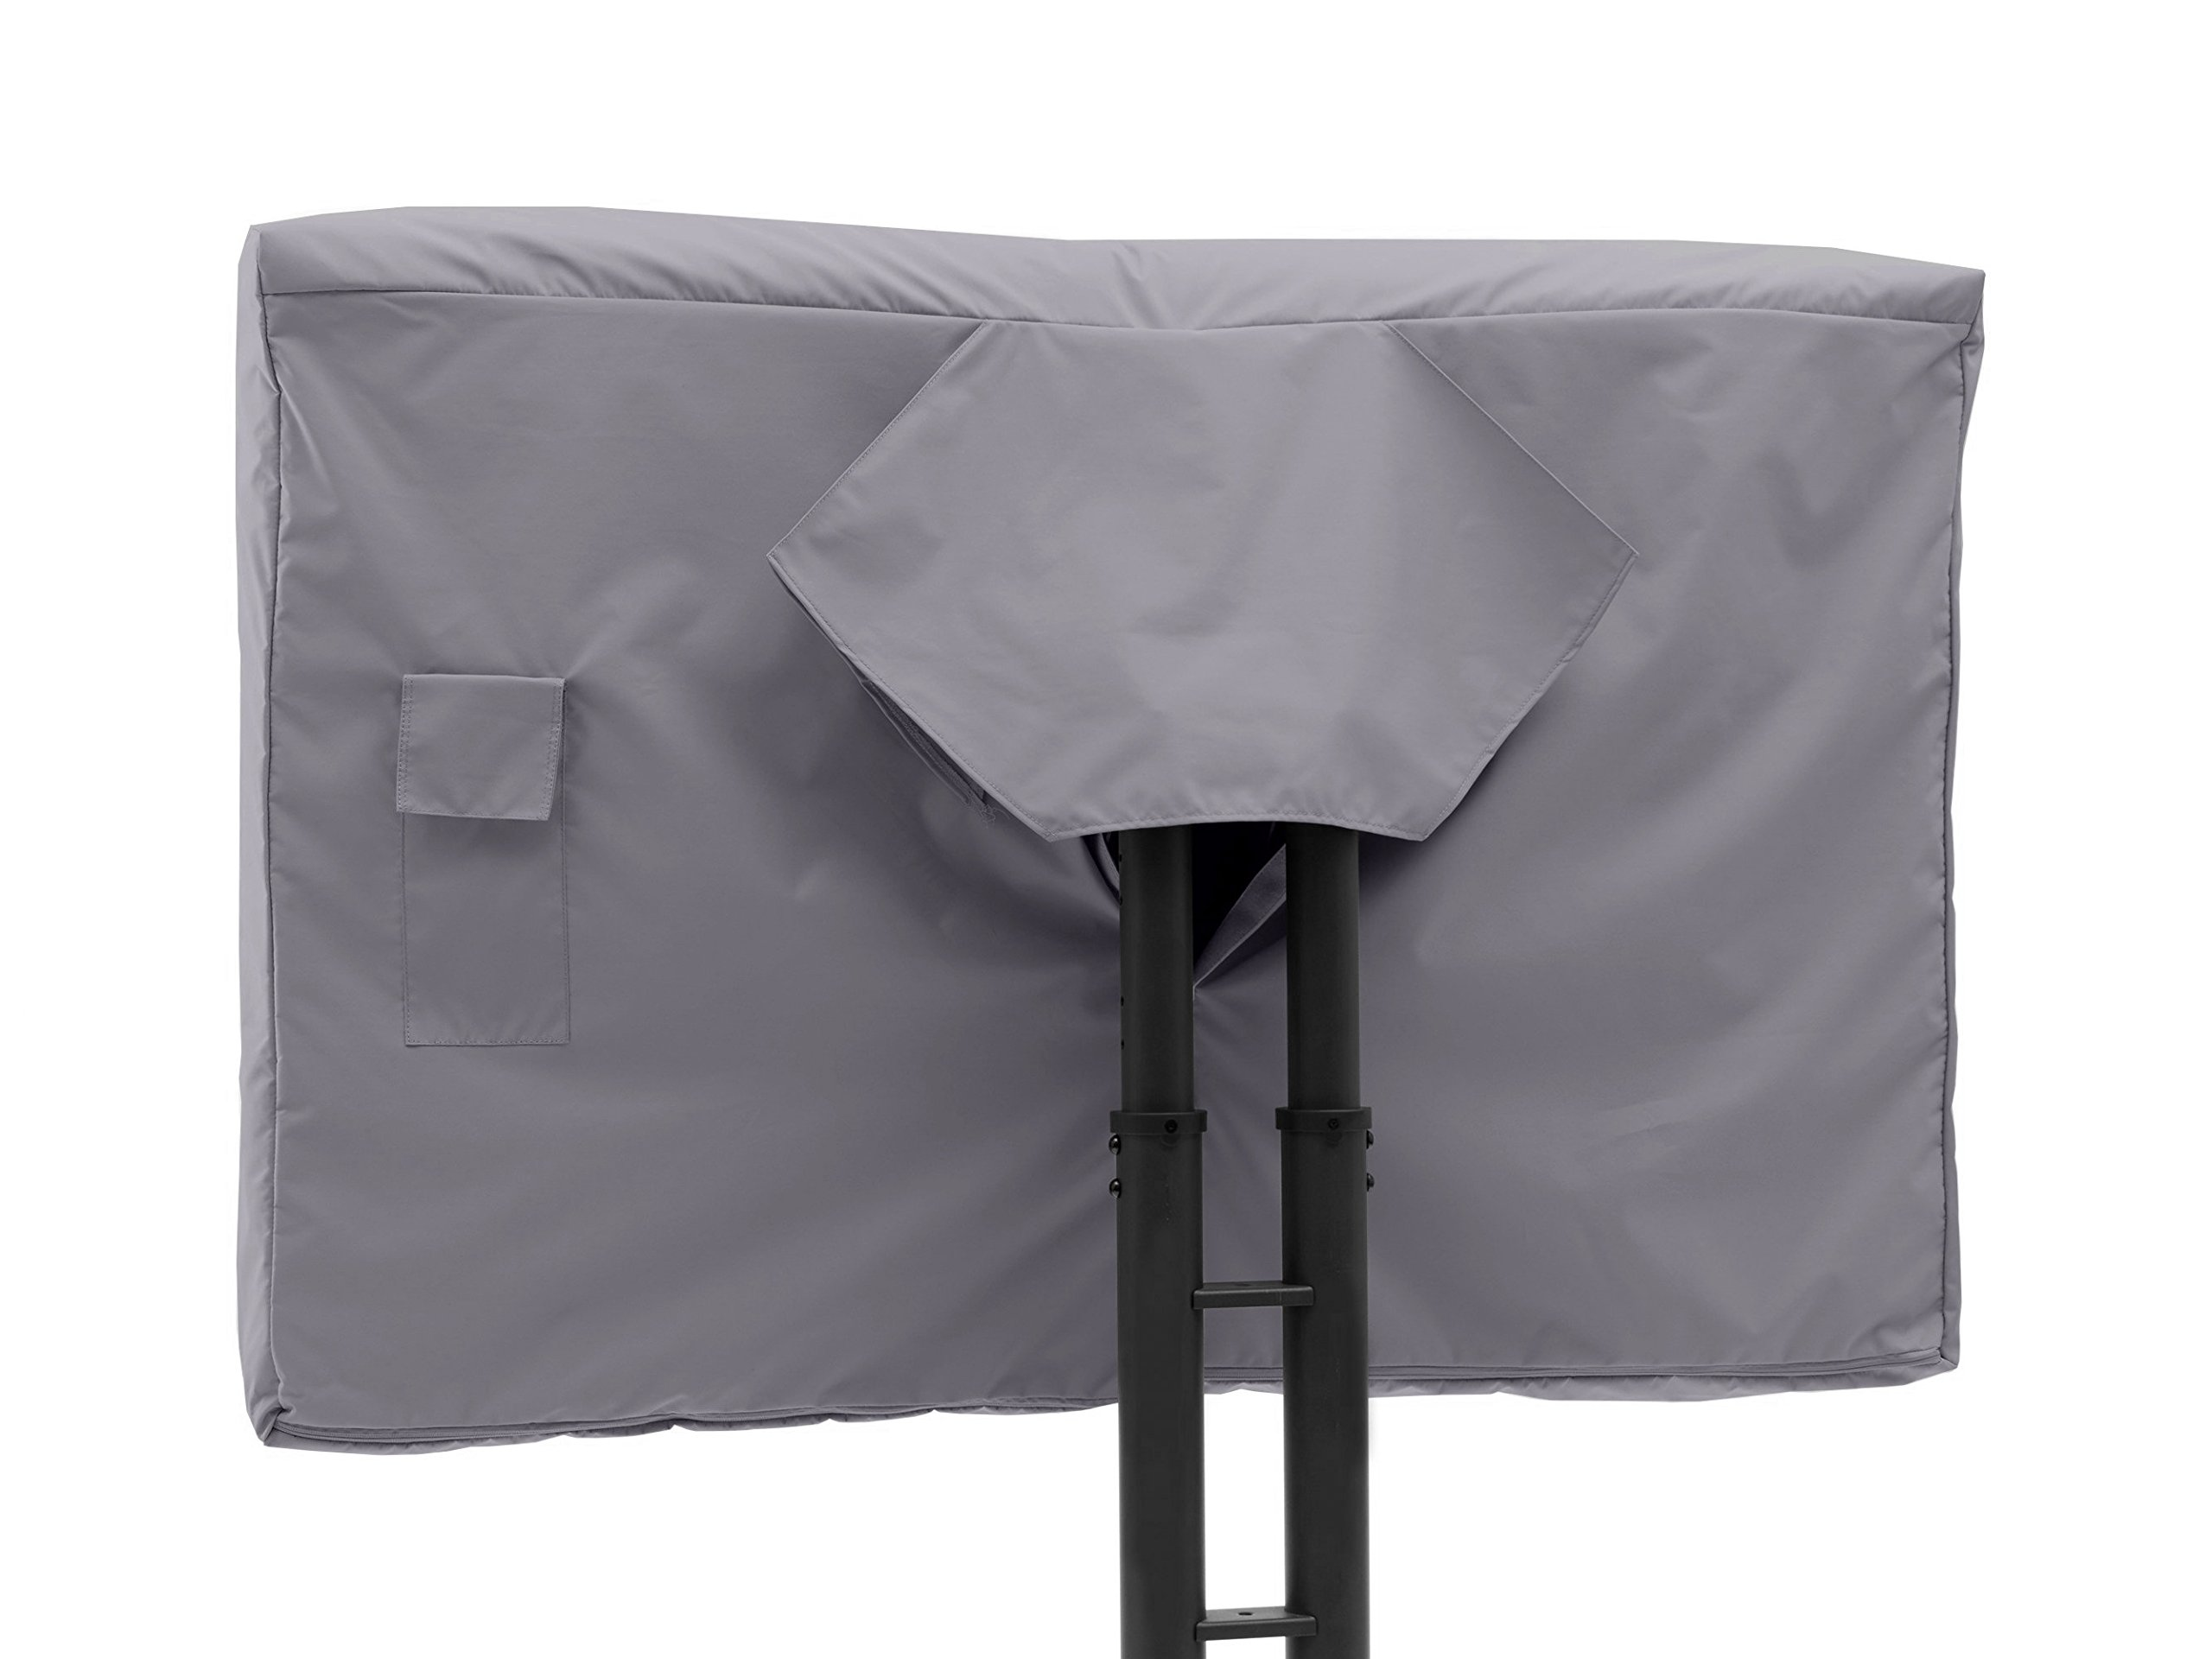 Covermates - Outdoor TV Cover - Fits 26 to 31 Inch TV's - Elite - 300 Denier Stock-Dyed Polyester - Full Coverage - Front Interior Fleece Lining - 3 YR Warranty - Water Resistant - Charcoal